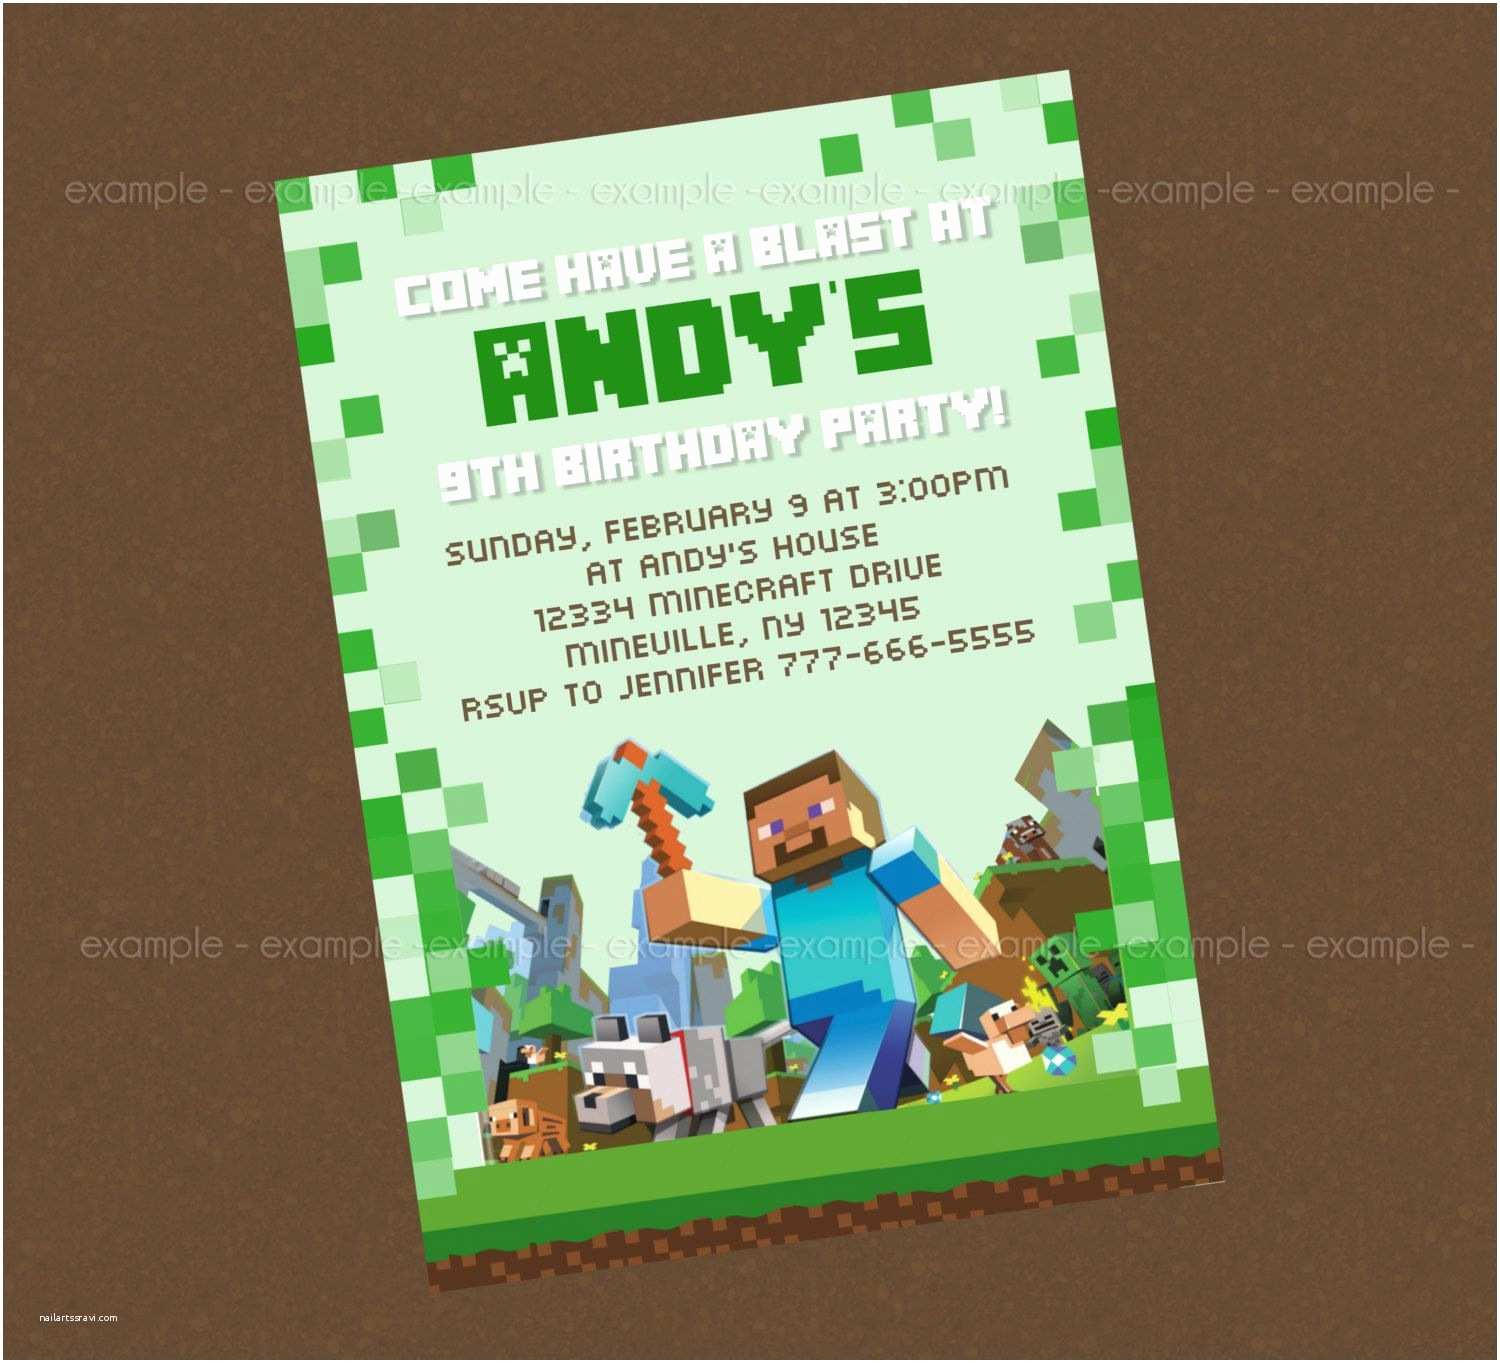 image regarding Printable Minecraft Invitations identified as Minecraft Birthday Invitation Template Minecraft Get together